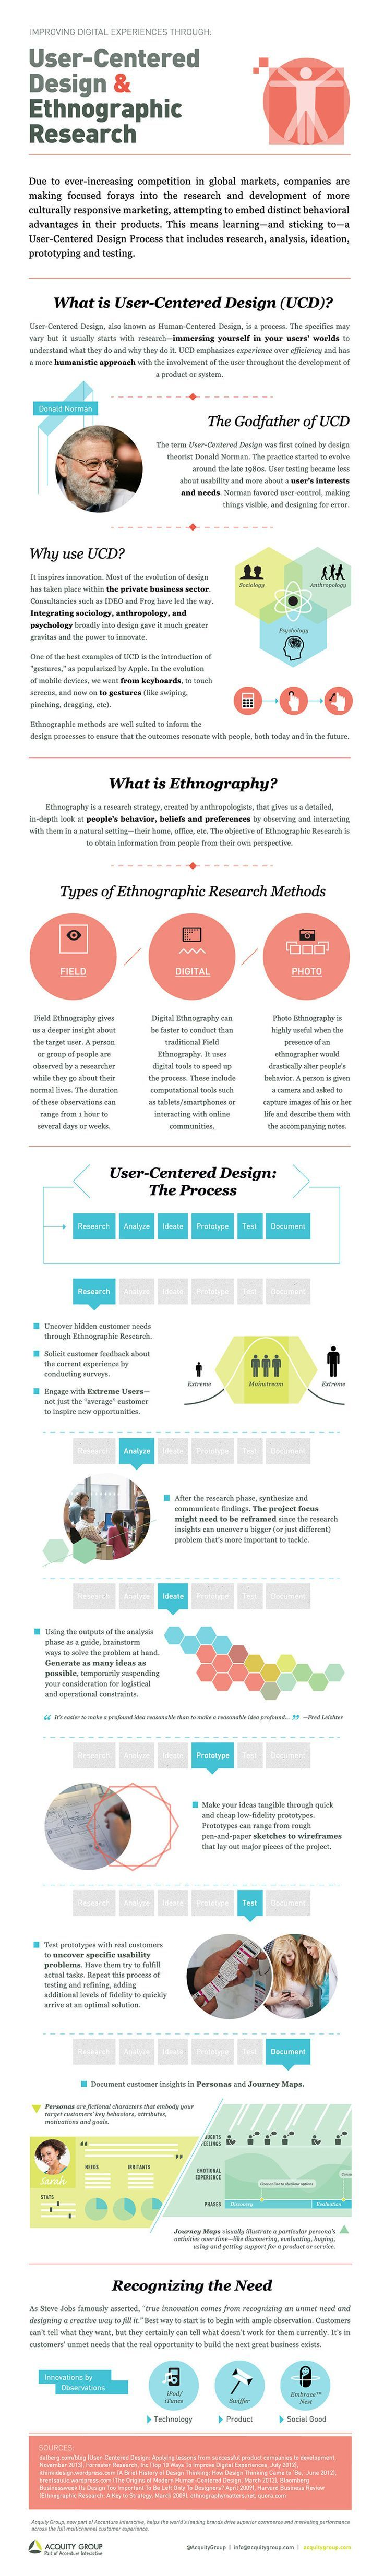 User-Centered Design and Ethnographic Research #infographic #Marketing #ContentMarketing. If you're a user experience professional, listen to The UX Blog Podcast on iTunes.